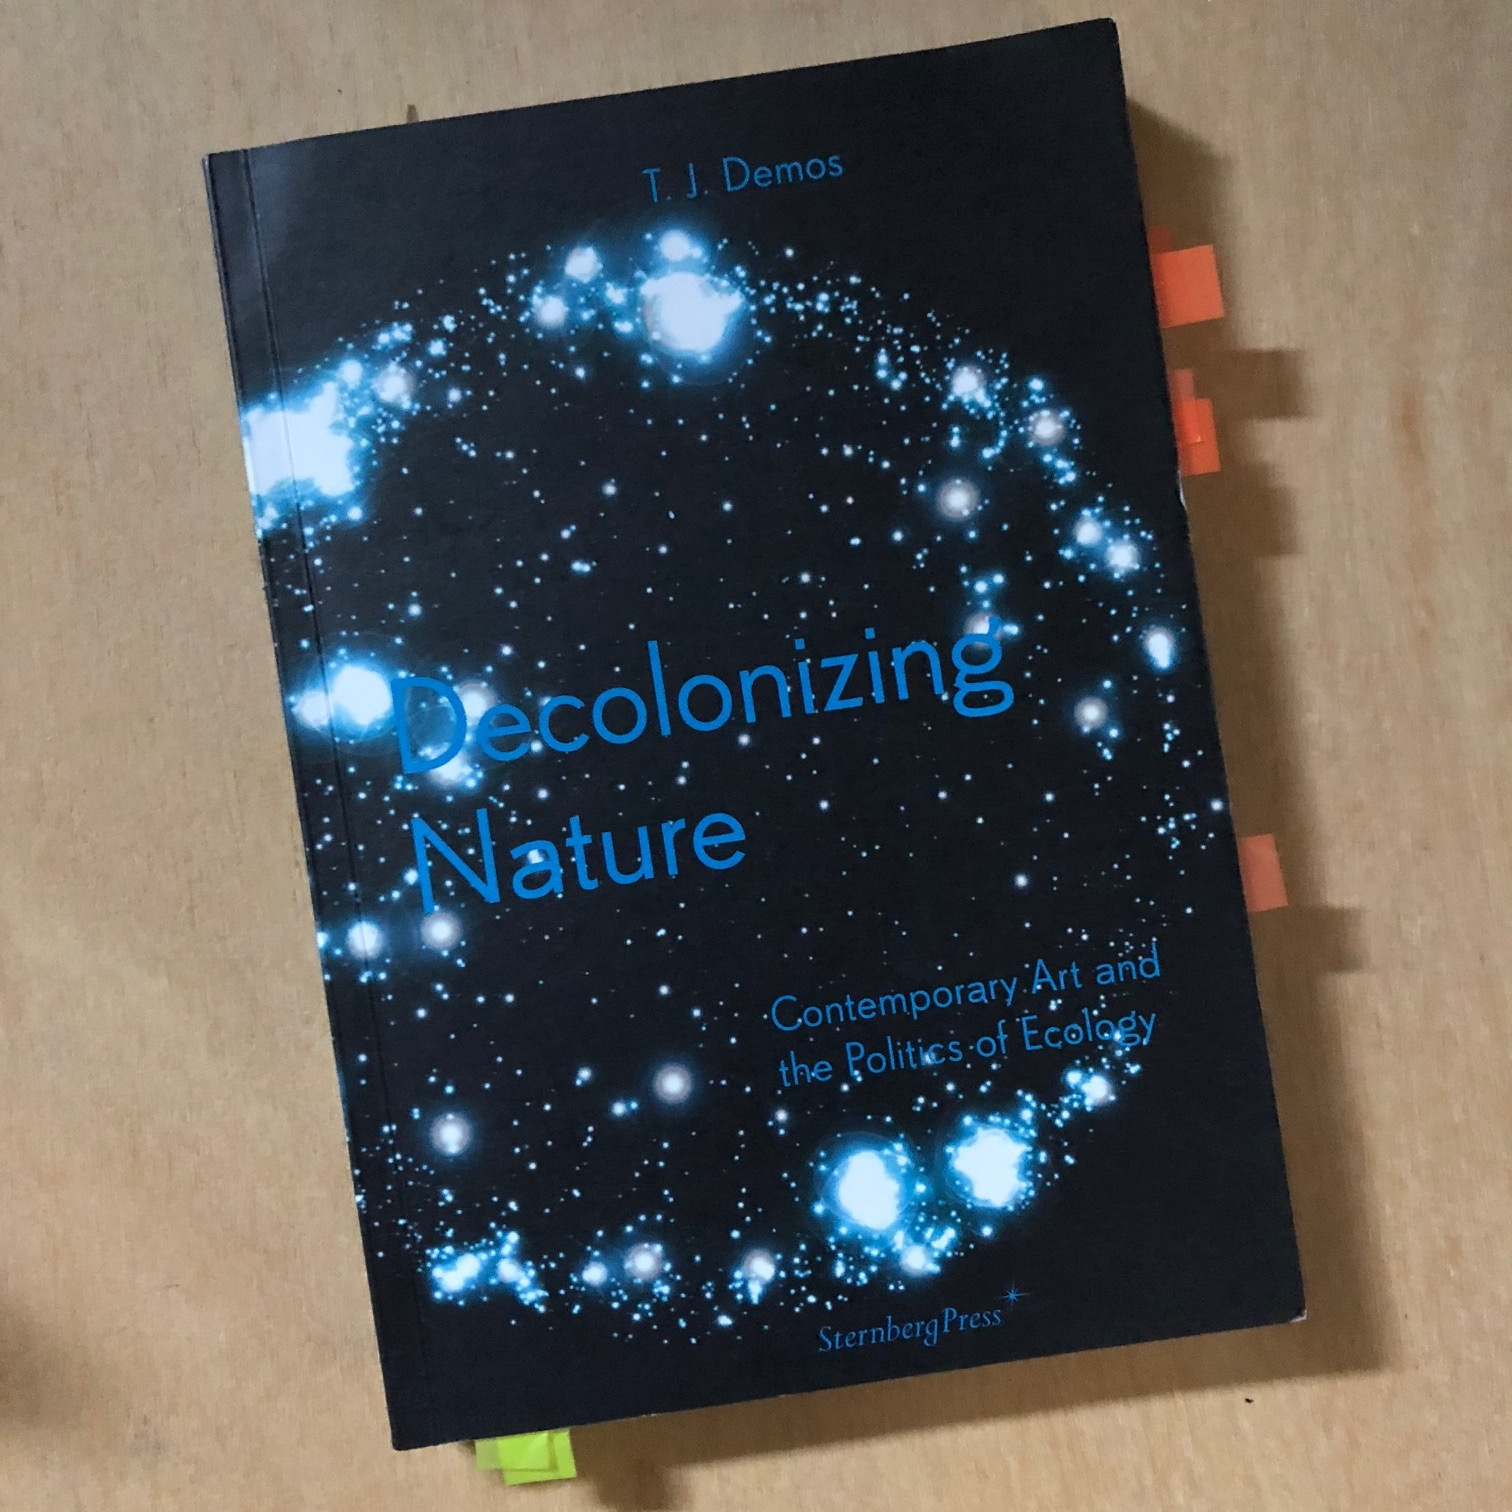 Decolonizing Nature: Contemporary Art and the Politics of Ecology,  by T.J. Demos.